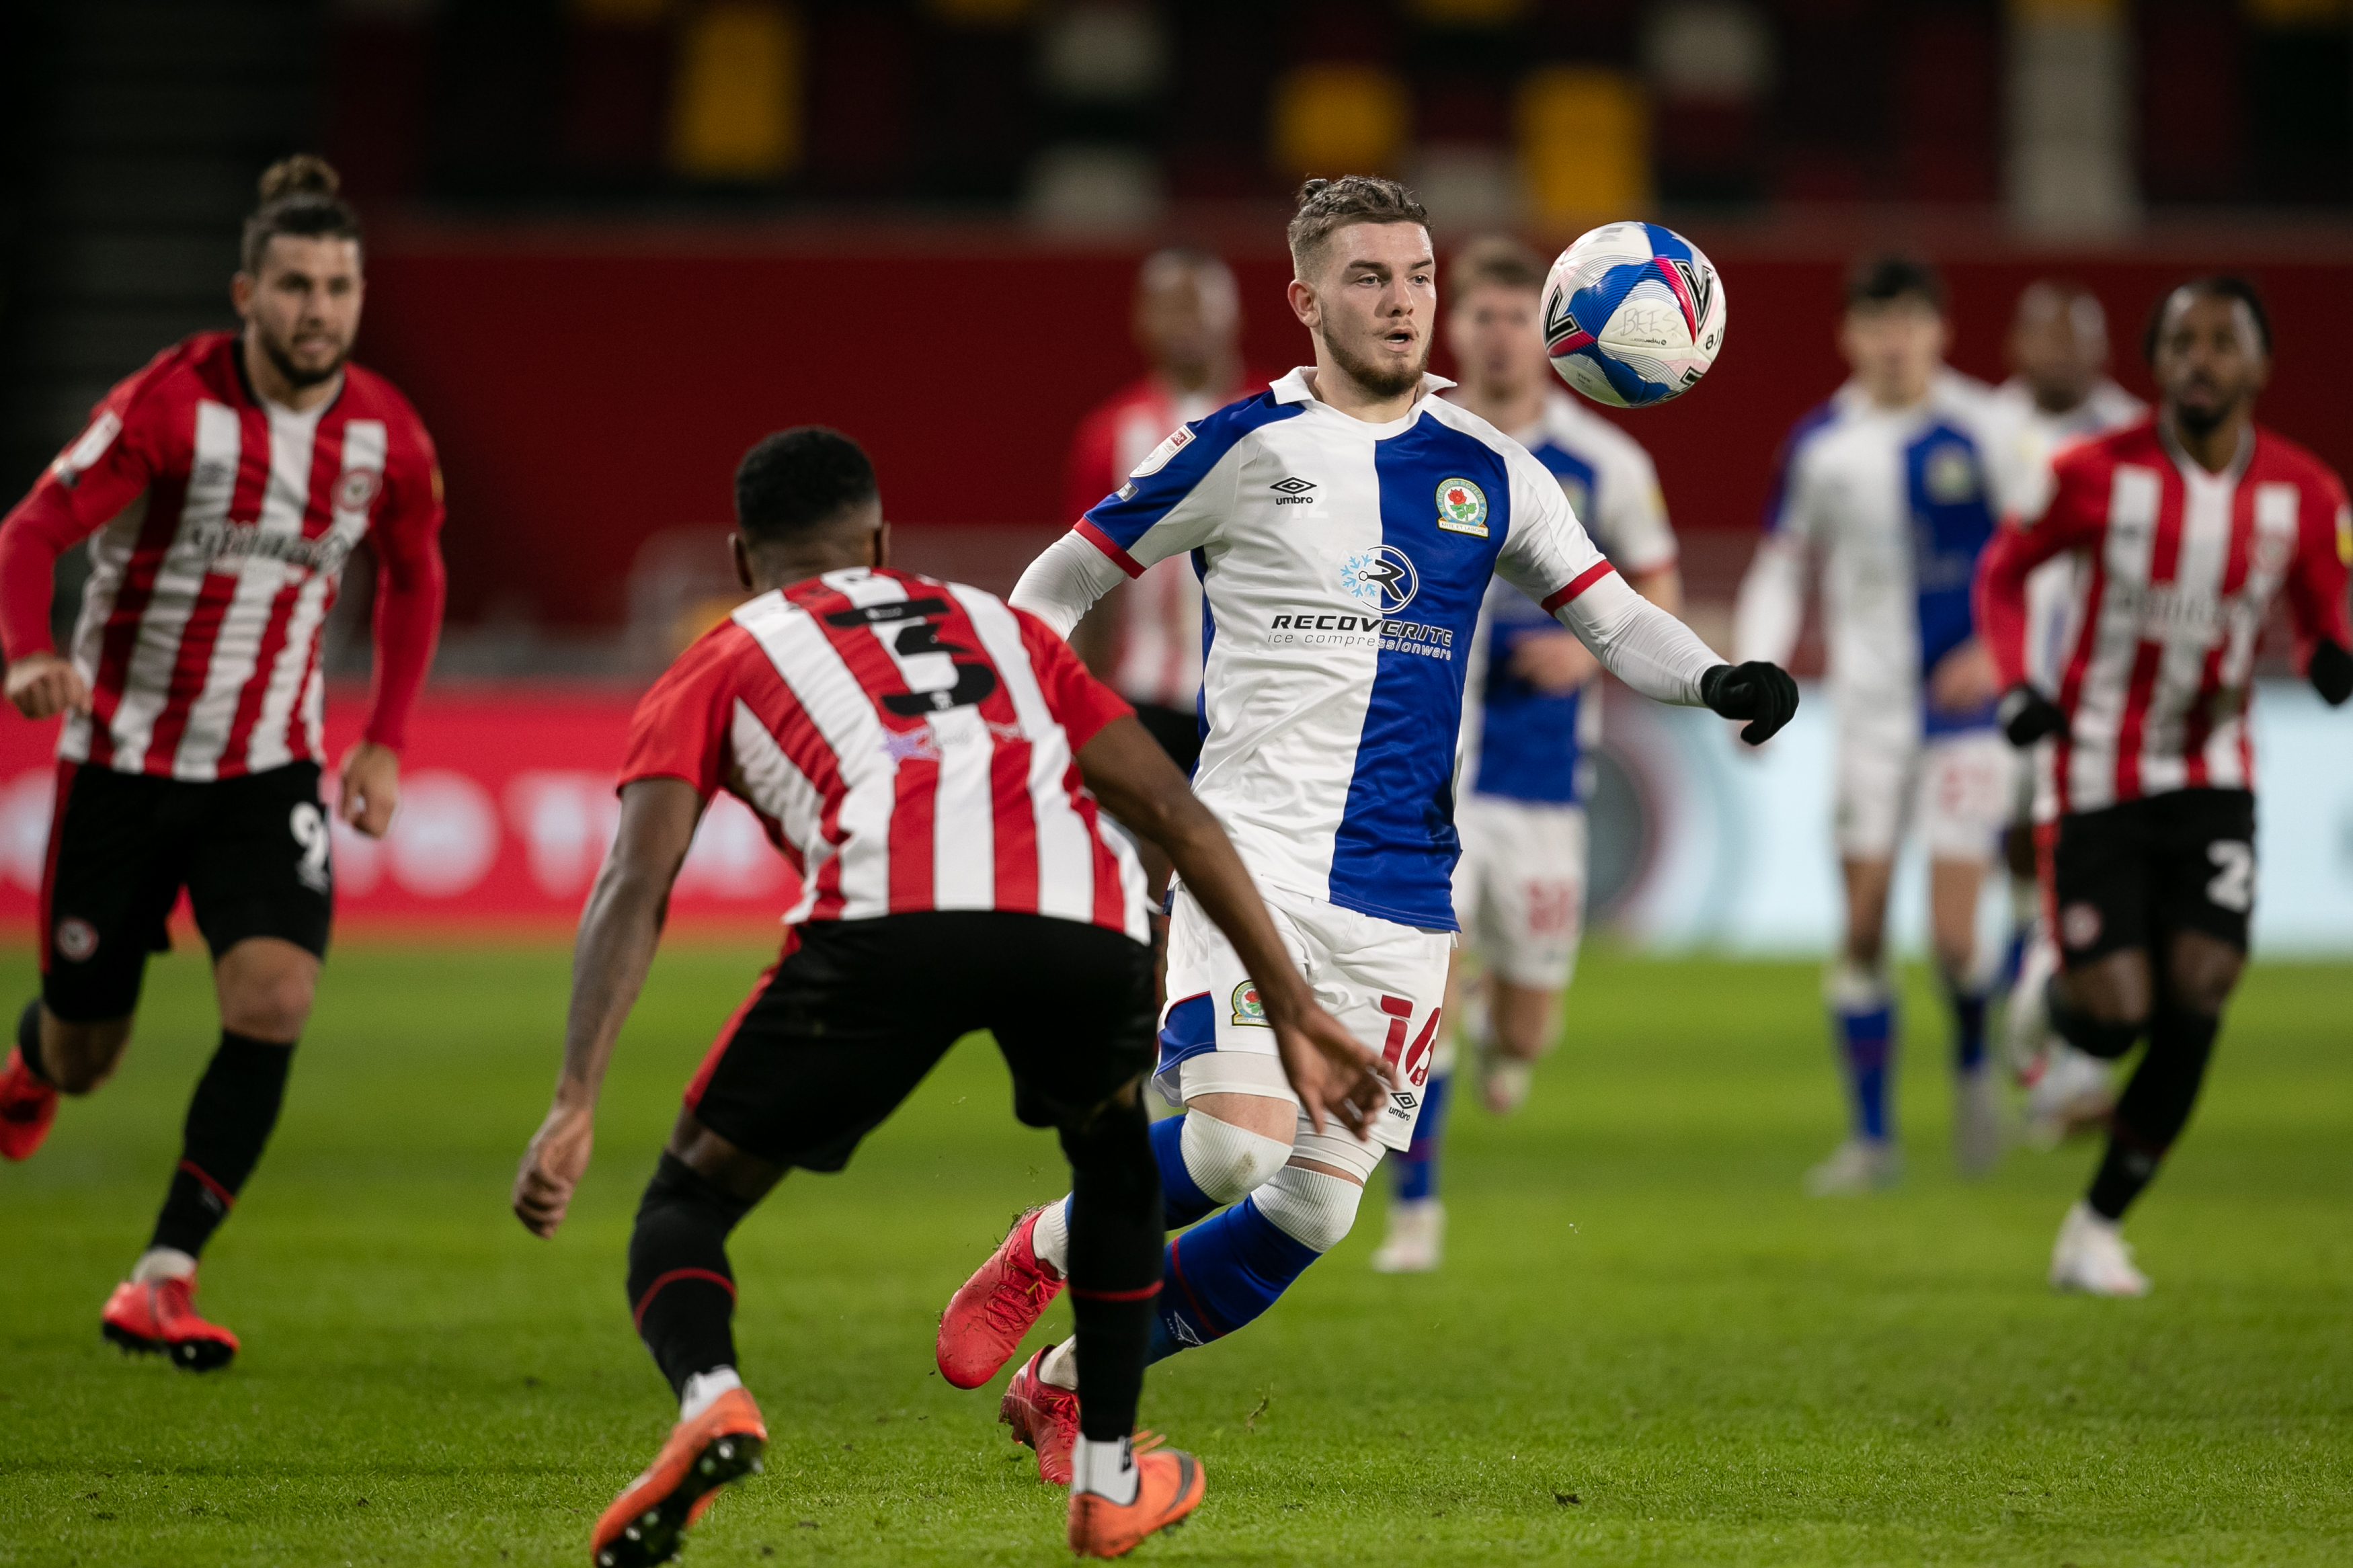 Harvey Elliot of Blackburn Rovers during the Sky Bet Championship match between Brentford and Blackburn Rovers at the Brentford Community Stadium, Brentford on Saturday 5th December 2020.